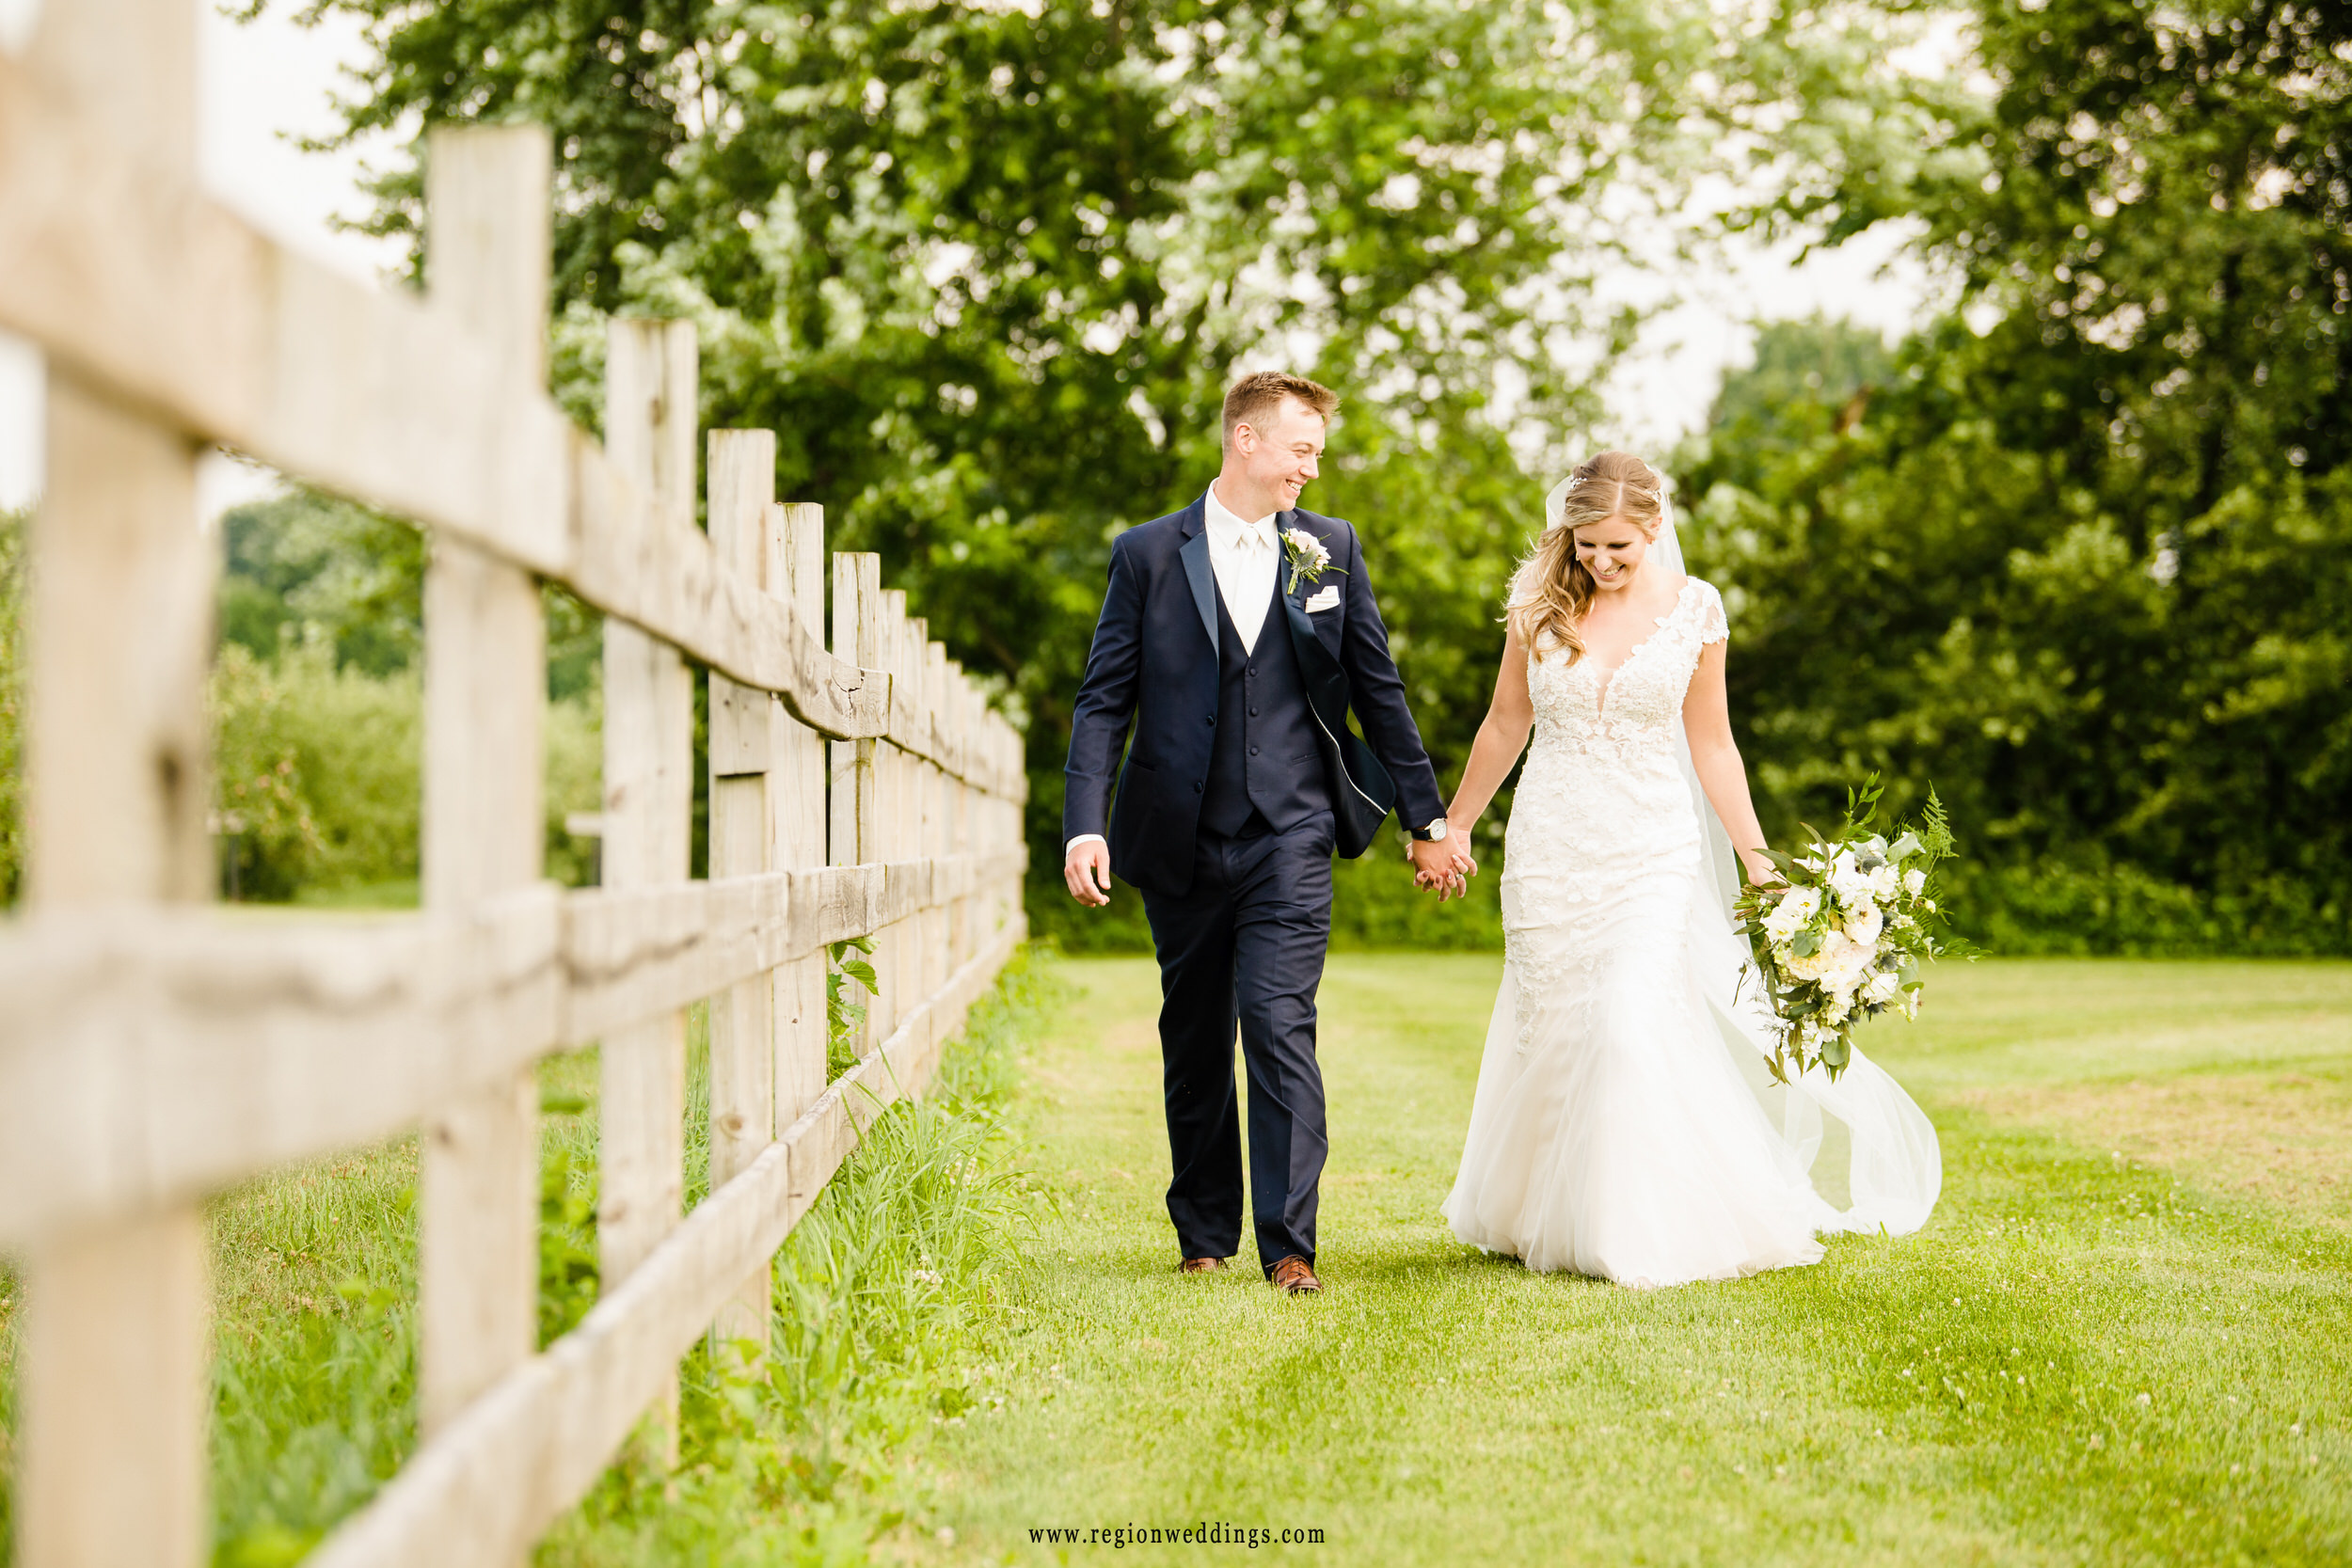 Bride and groom take a joyful walk in the fields at County Line Orchard.